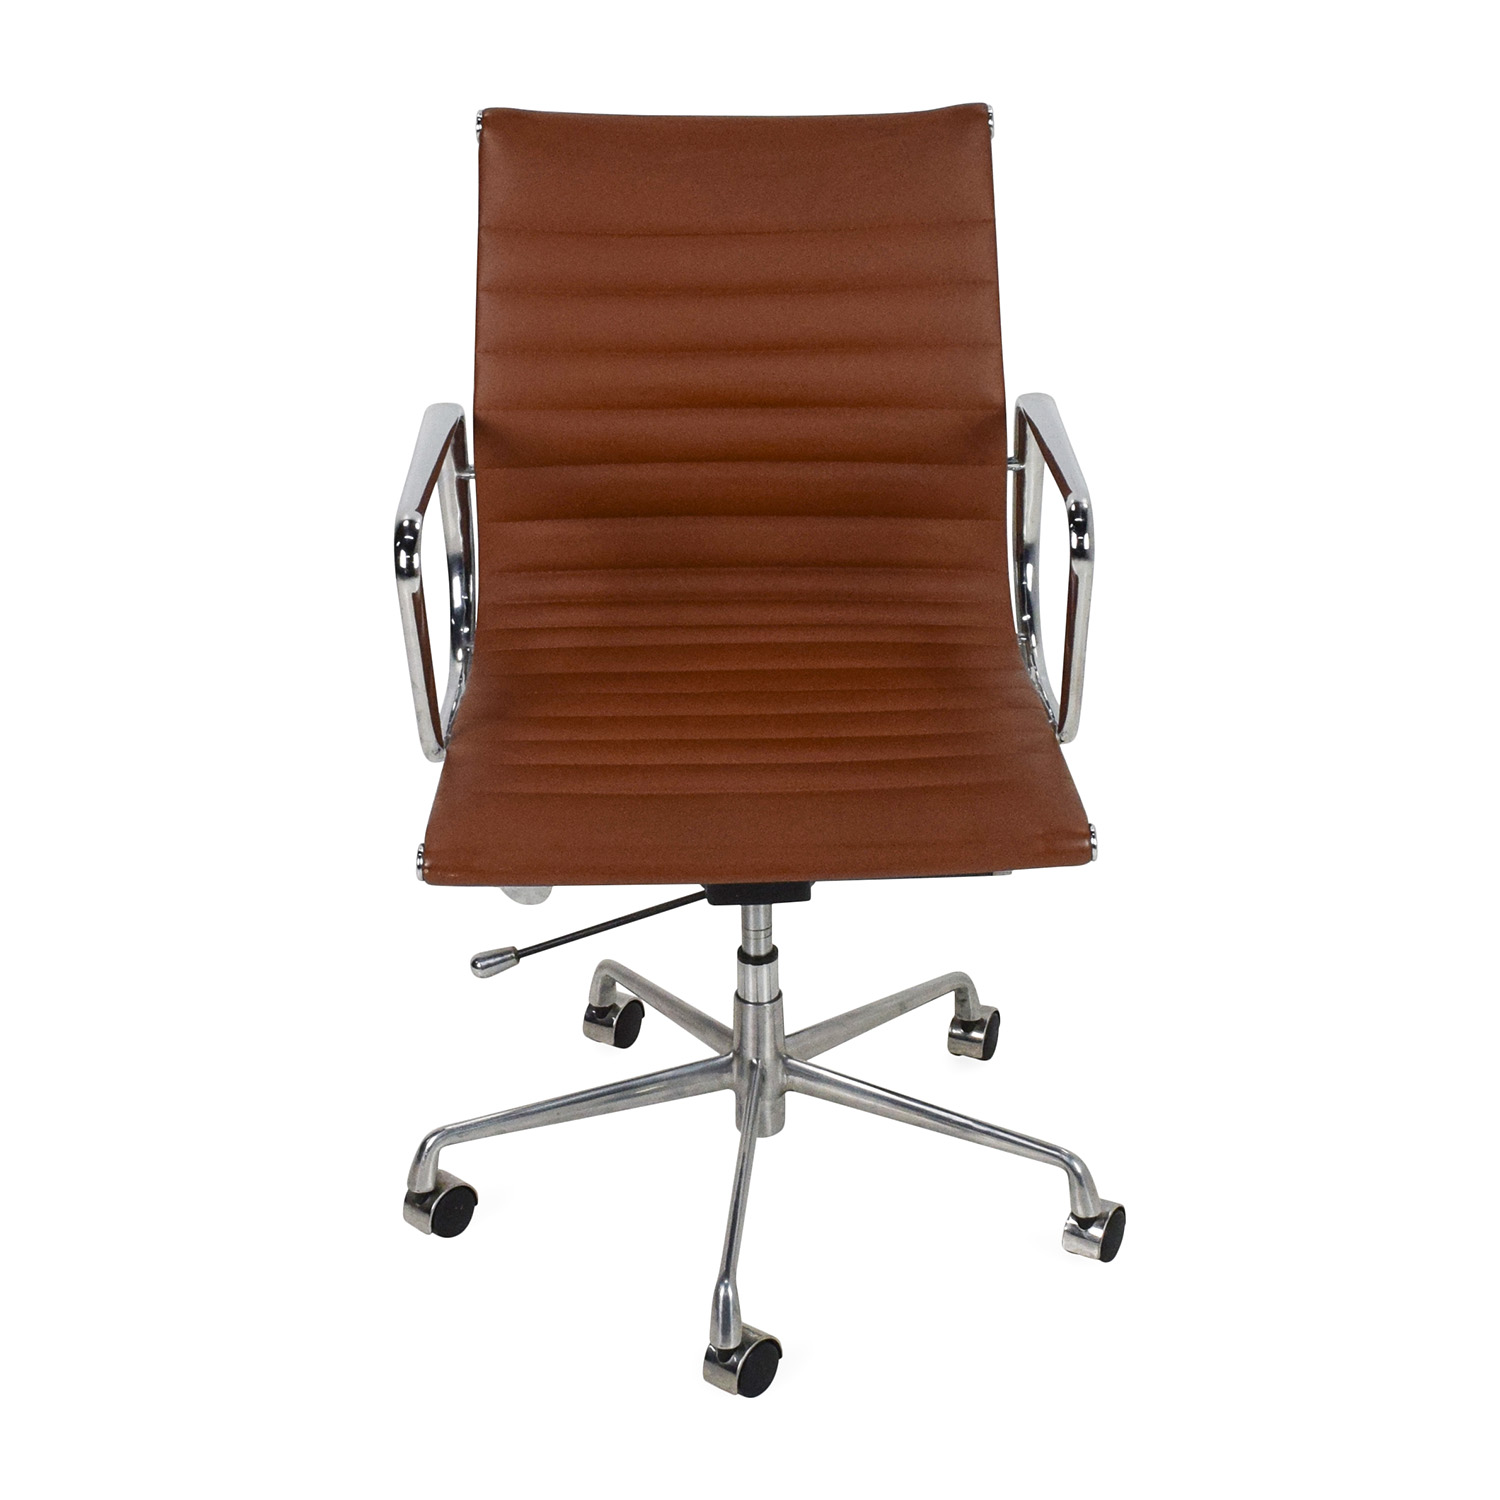 buy Unknown Brand Chrome Office Chair online